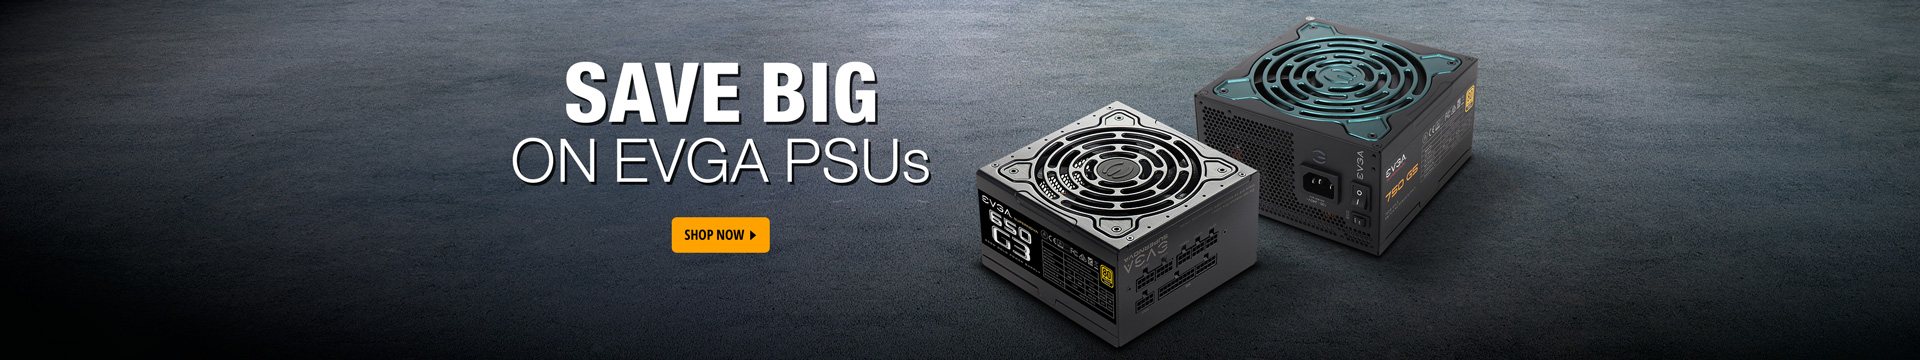 Save Big on EVGA PSUs